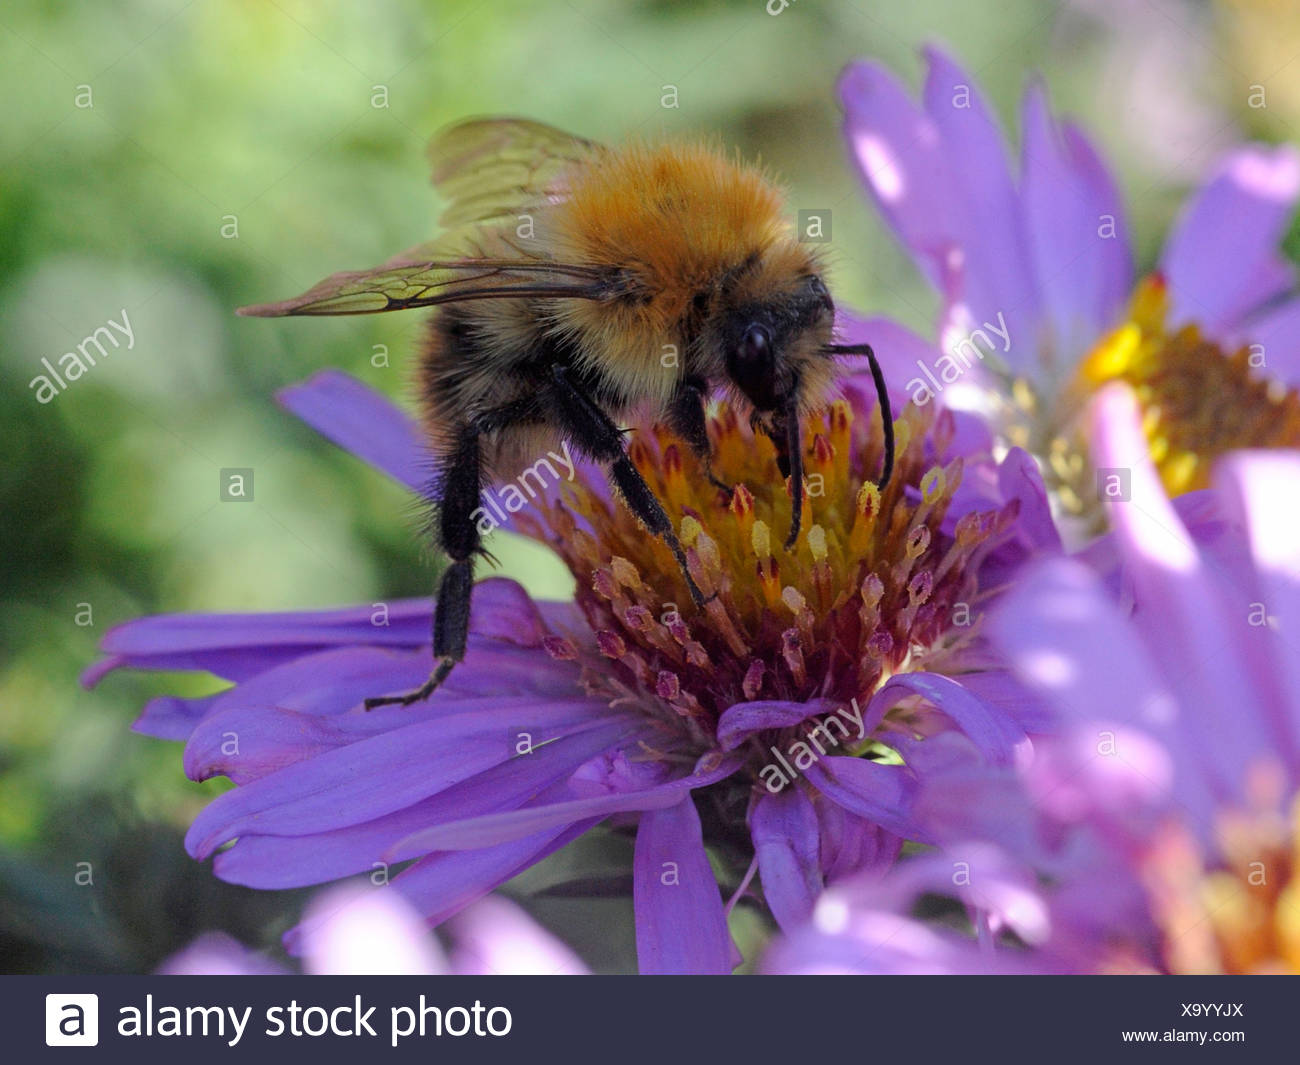 A bee collecting nectar from a purple flower. - Stock Image